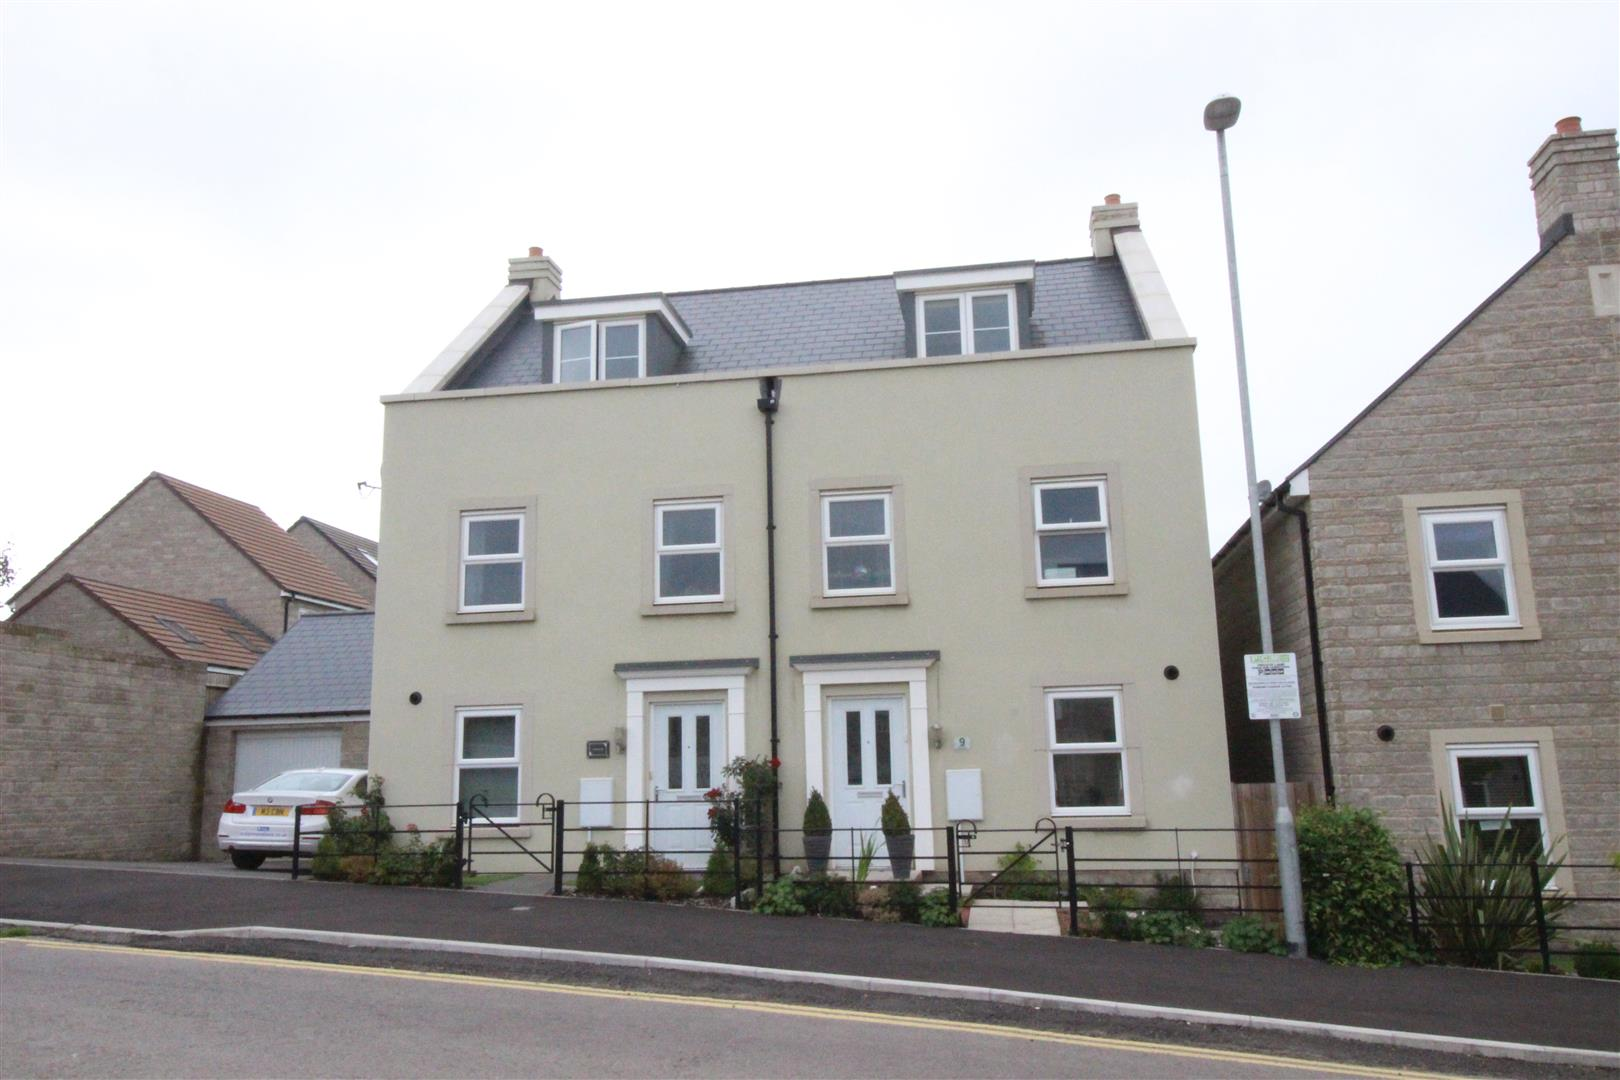 3 Bedrooms Semi Detached House for sale in Cowleaze, Purton, Swindon